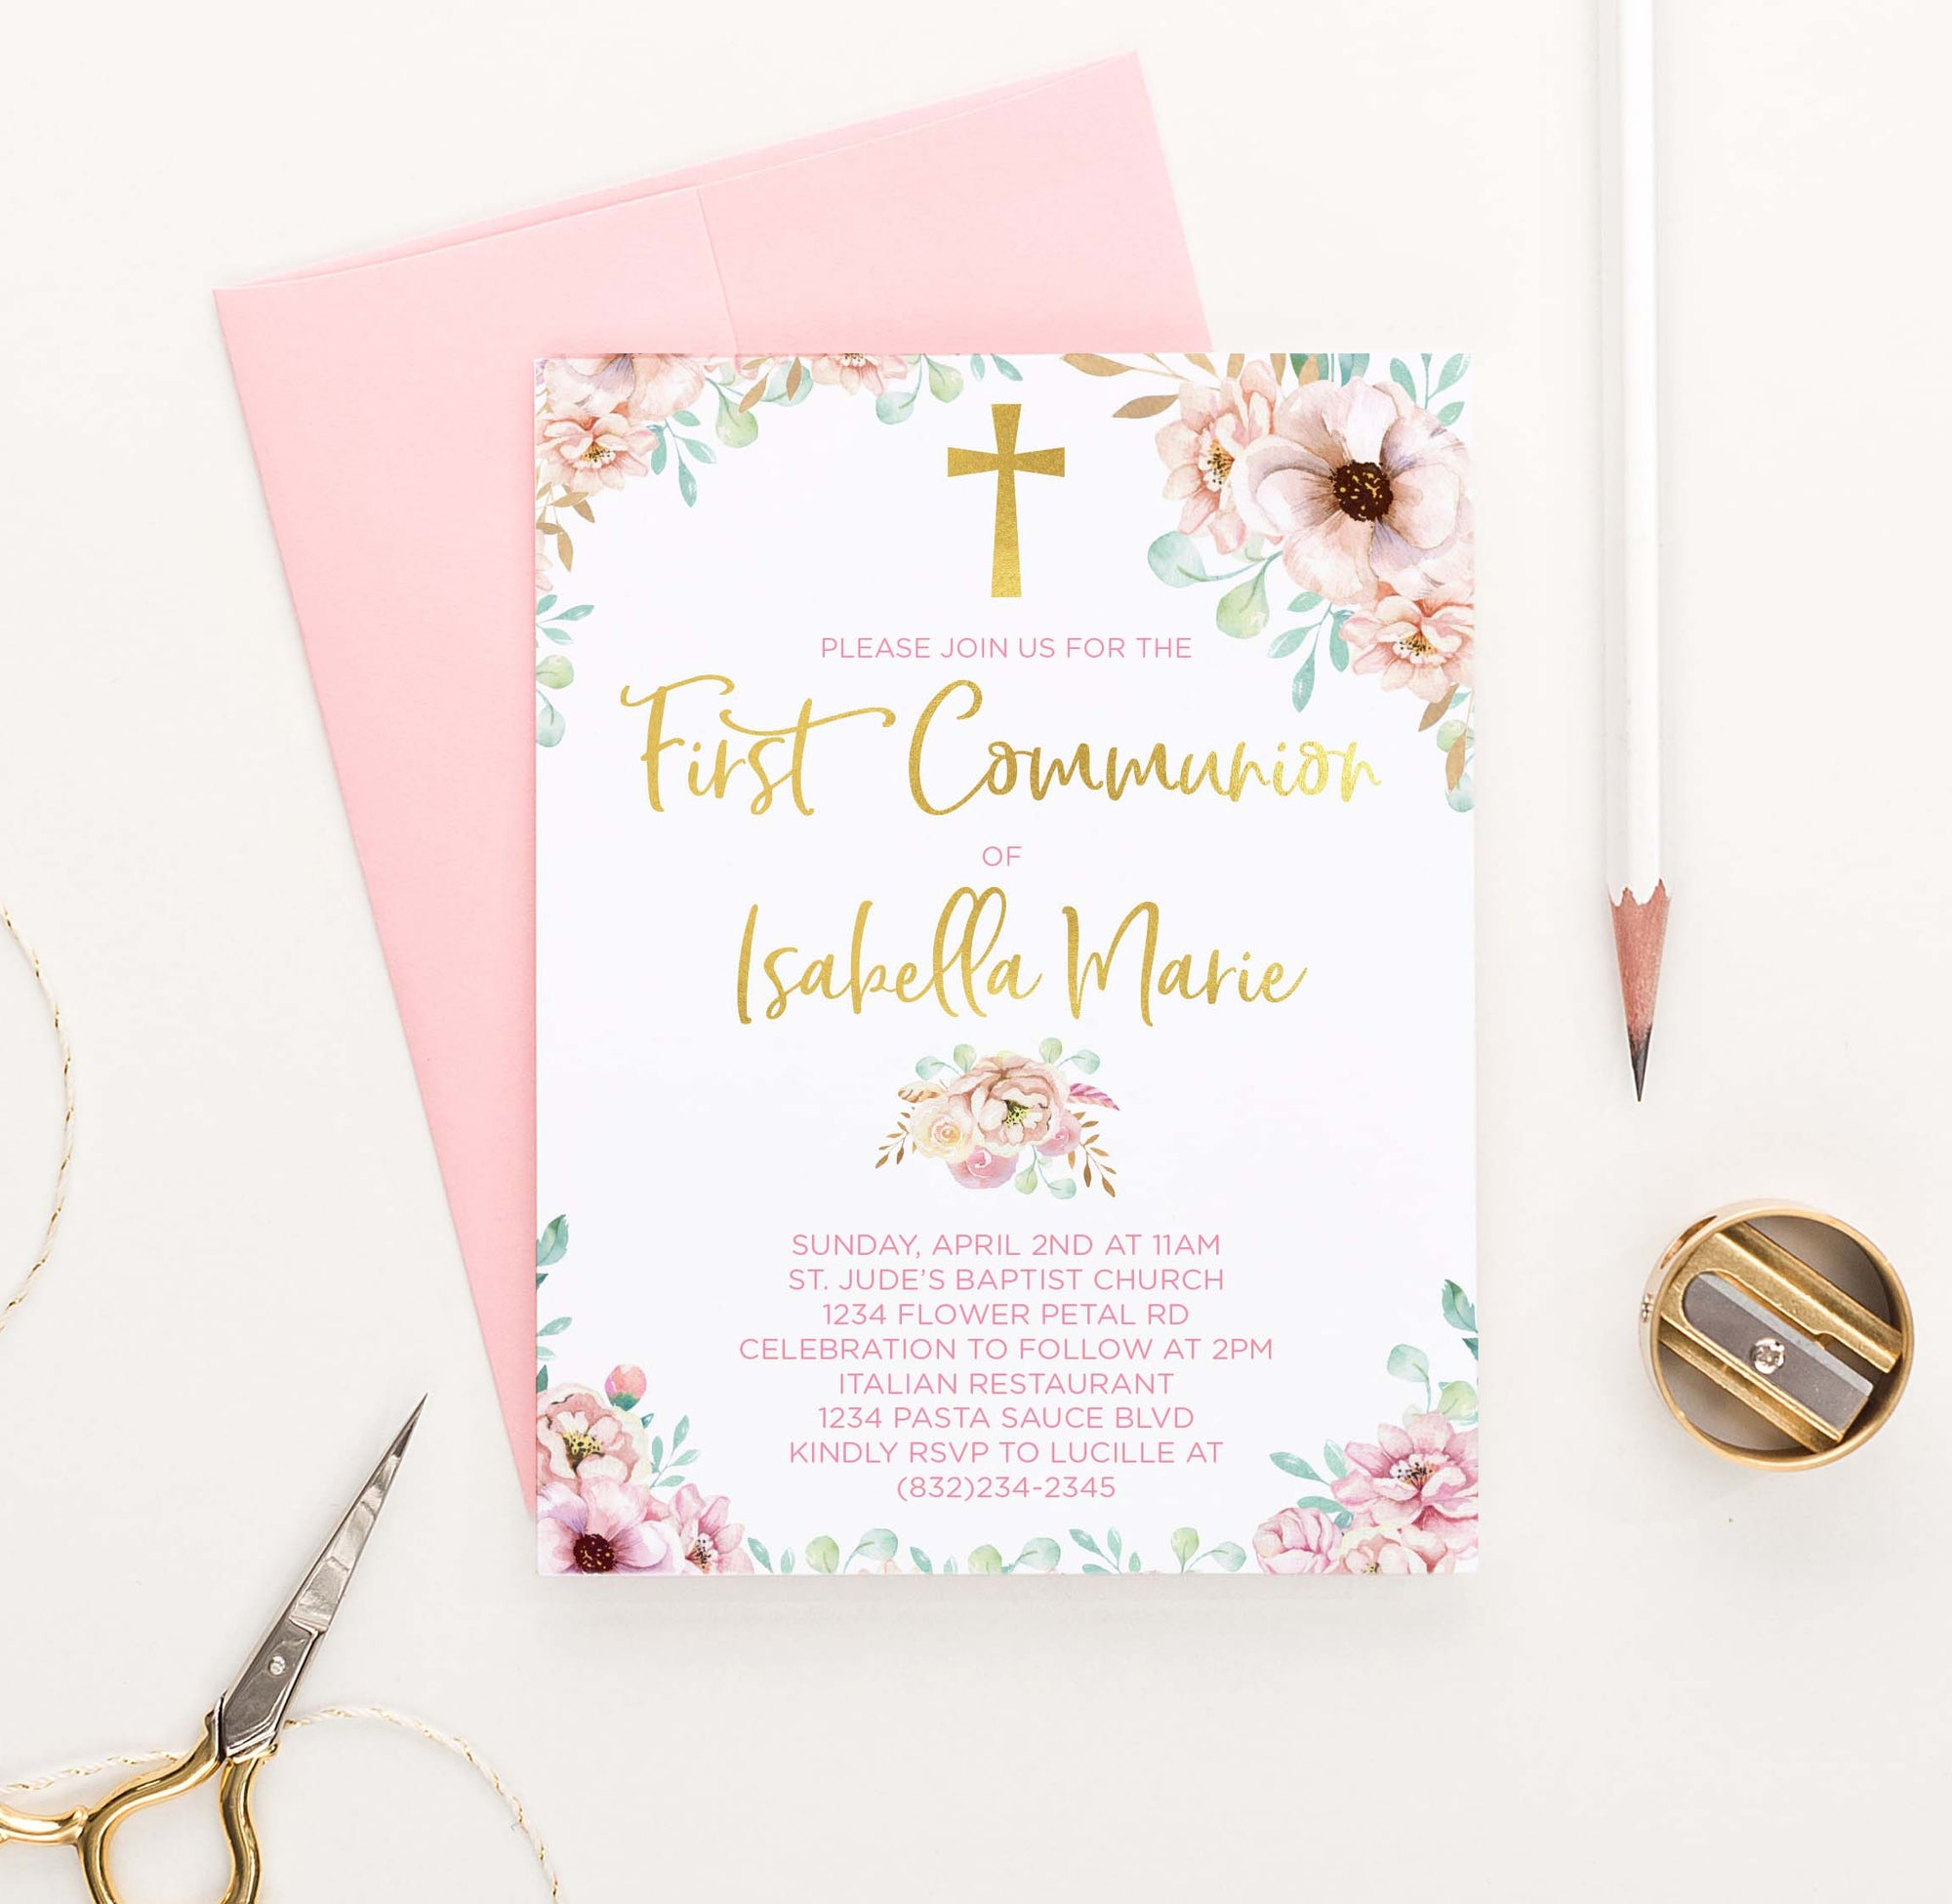 FCI010 pink floral and gold first communion invitations for girls rustic elegant